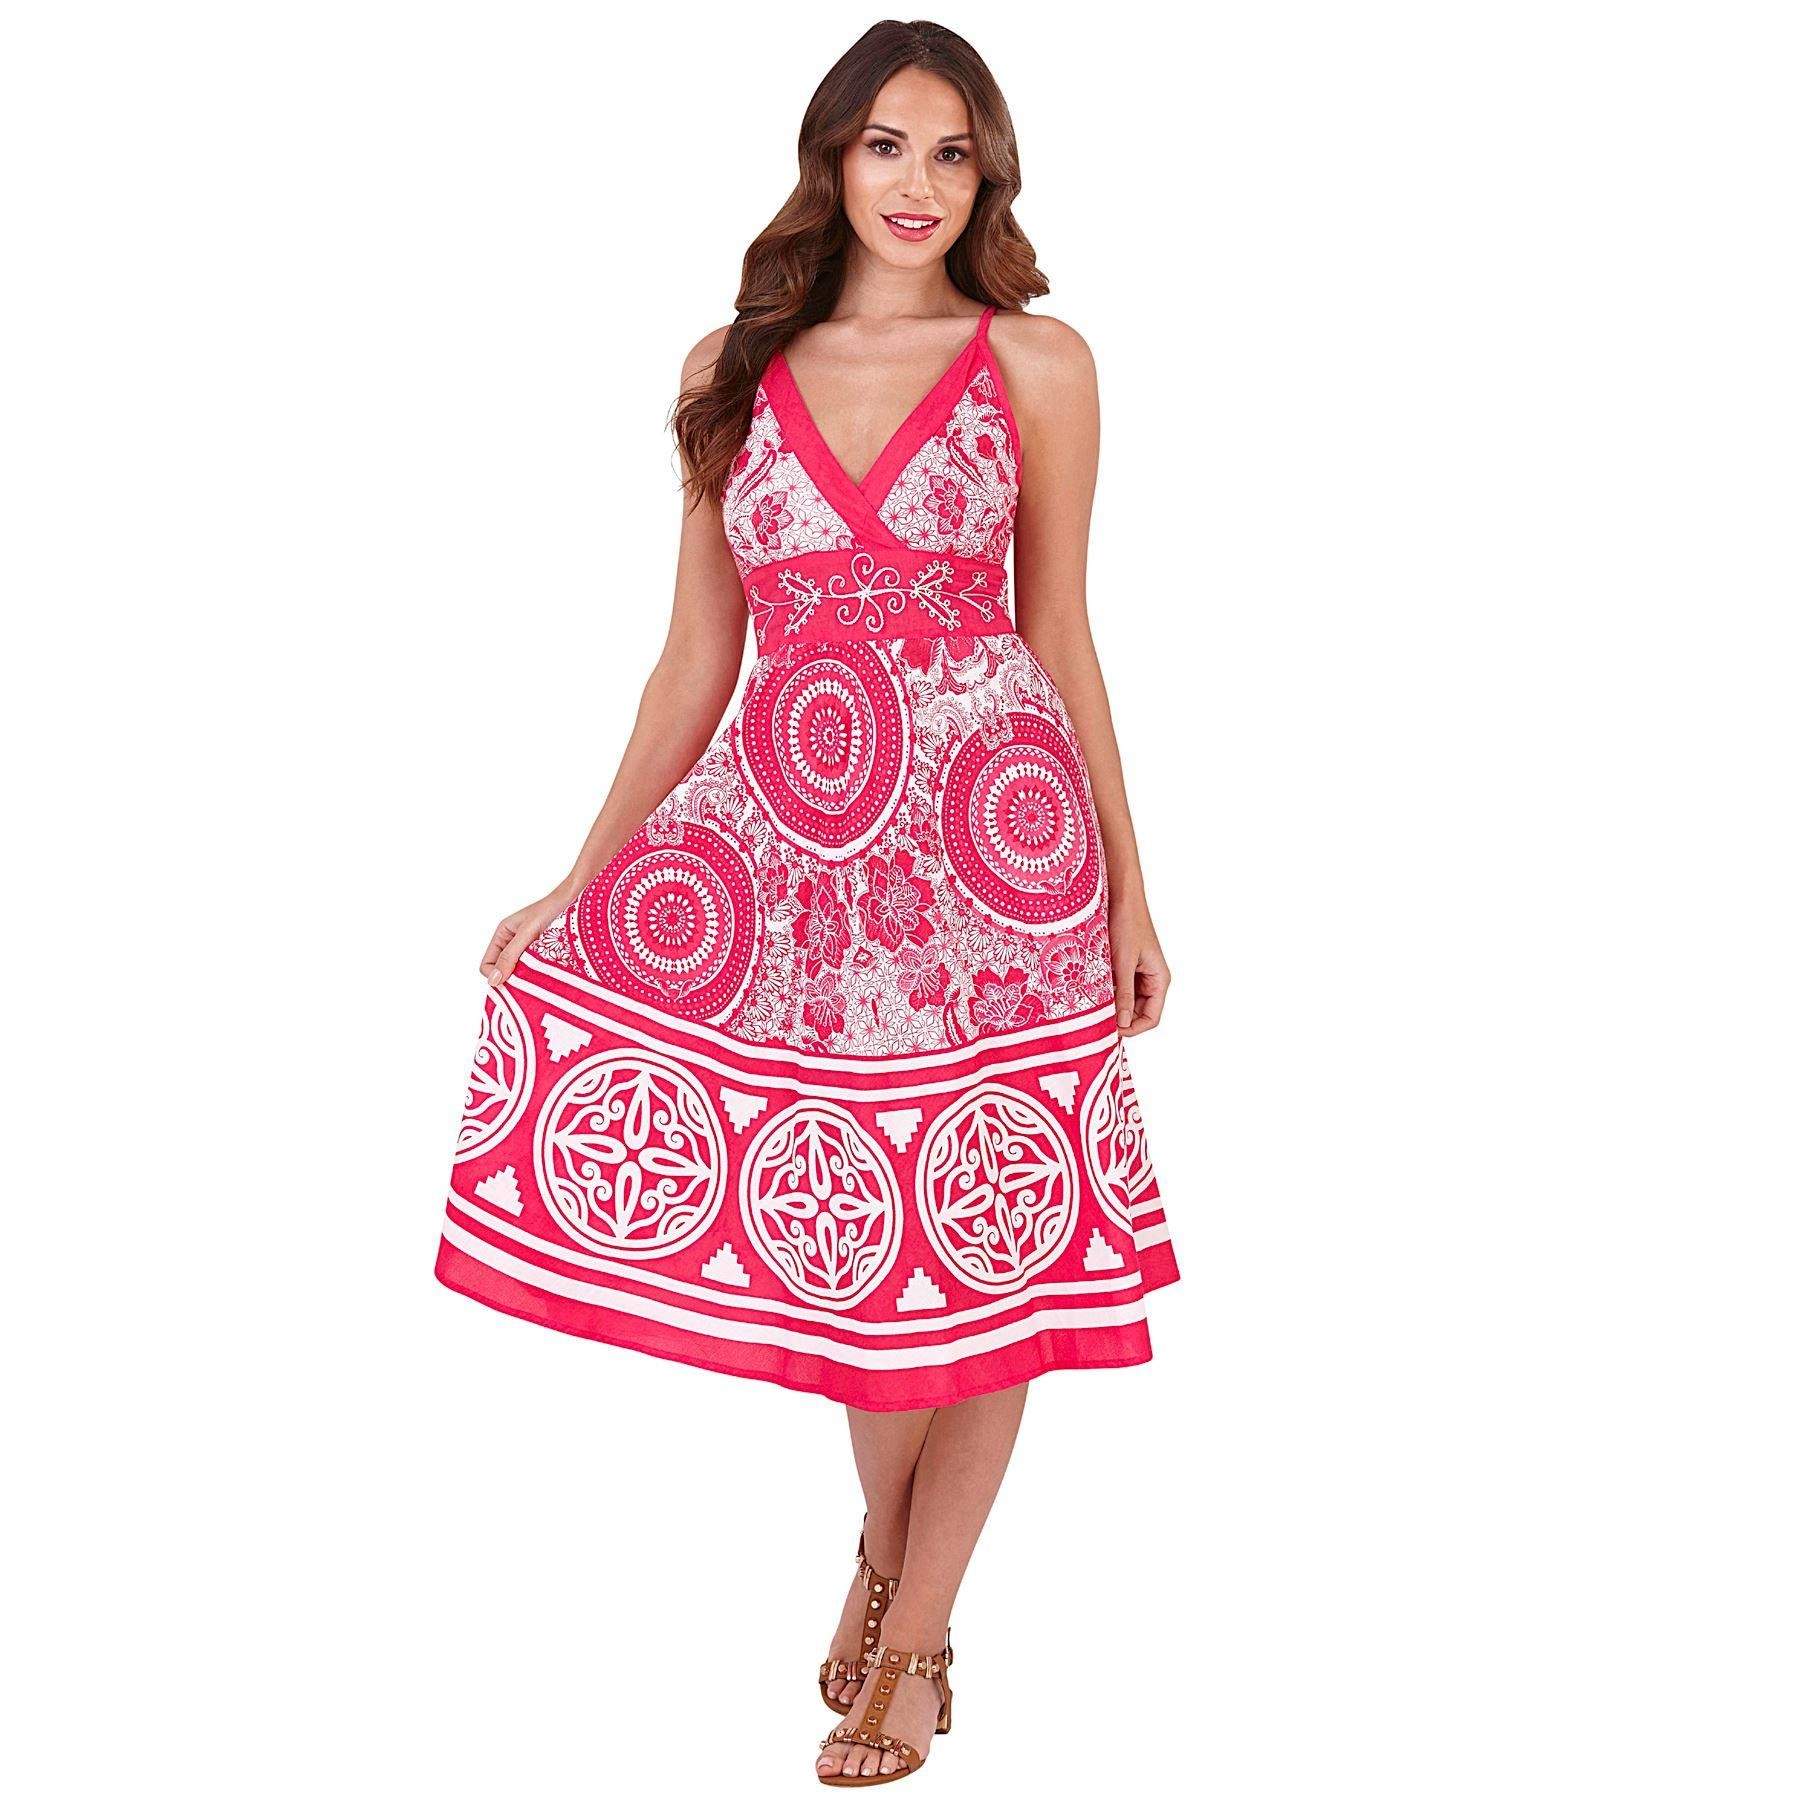 Pistachio Pattern Crossover Dress - Pink